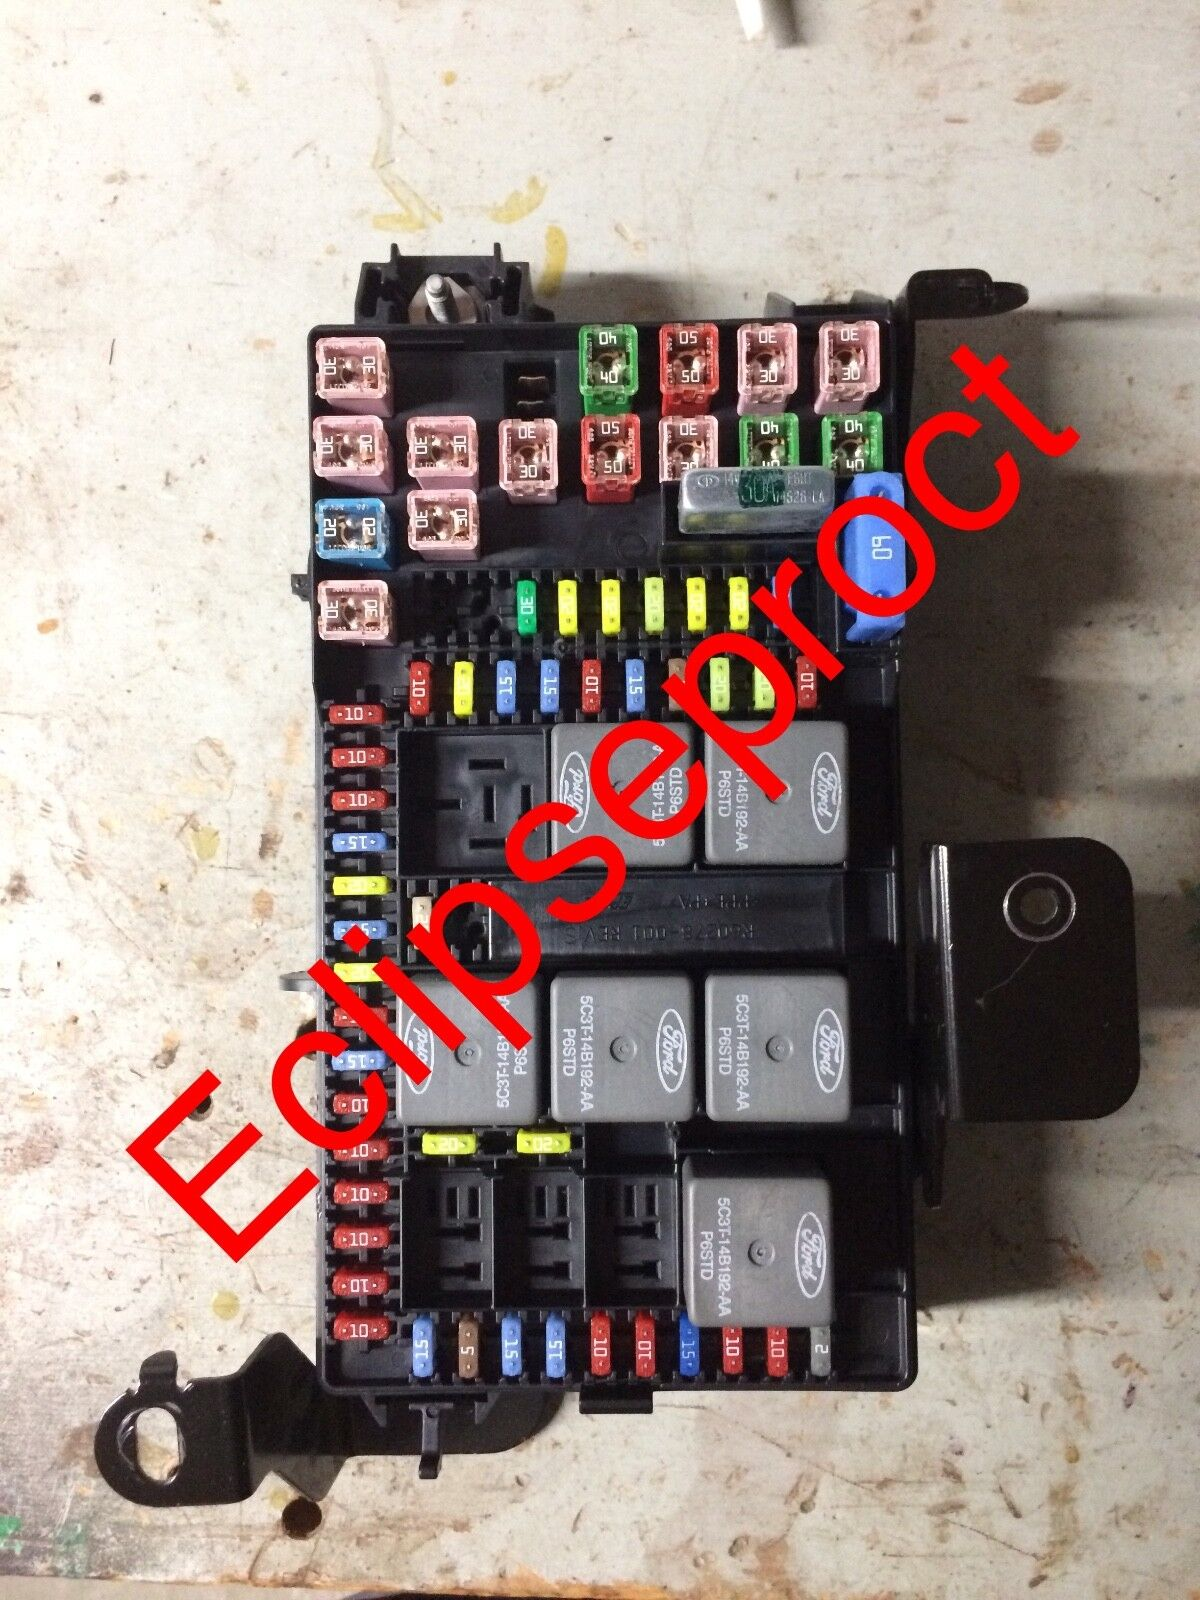 Used 2002 Ford Excursion Computers Chips Cruise Control And 2001 Fuse Box 2003 Repair Service